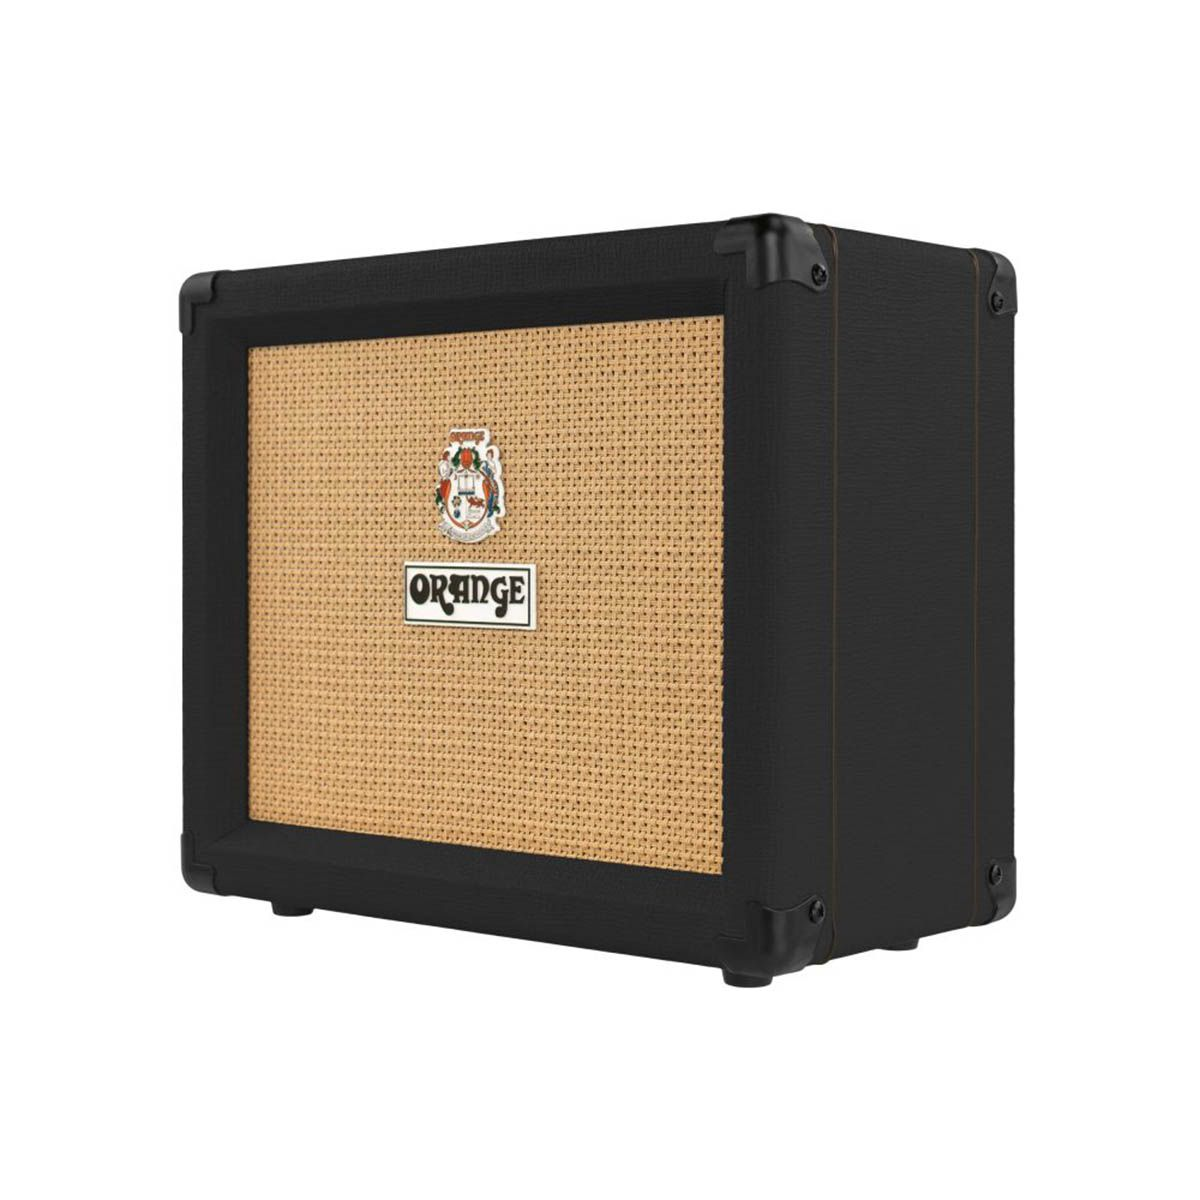 Caixa Amplificada Orange Crush 20W 1x8 Black para Guitarra